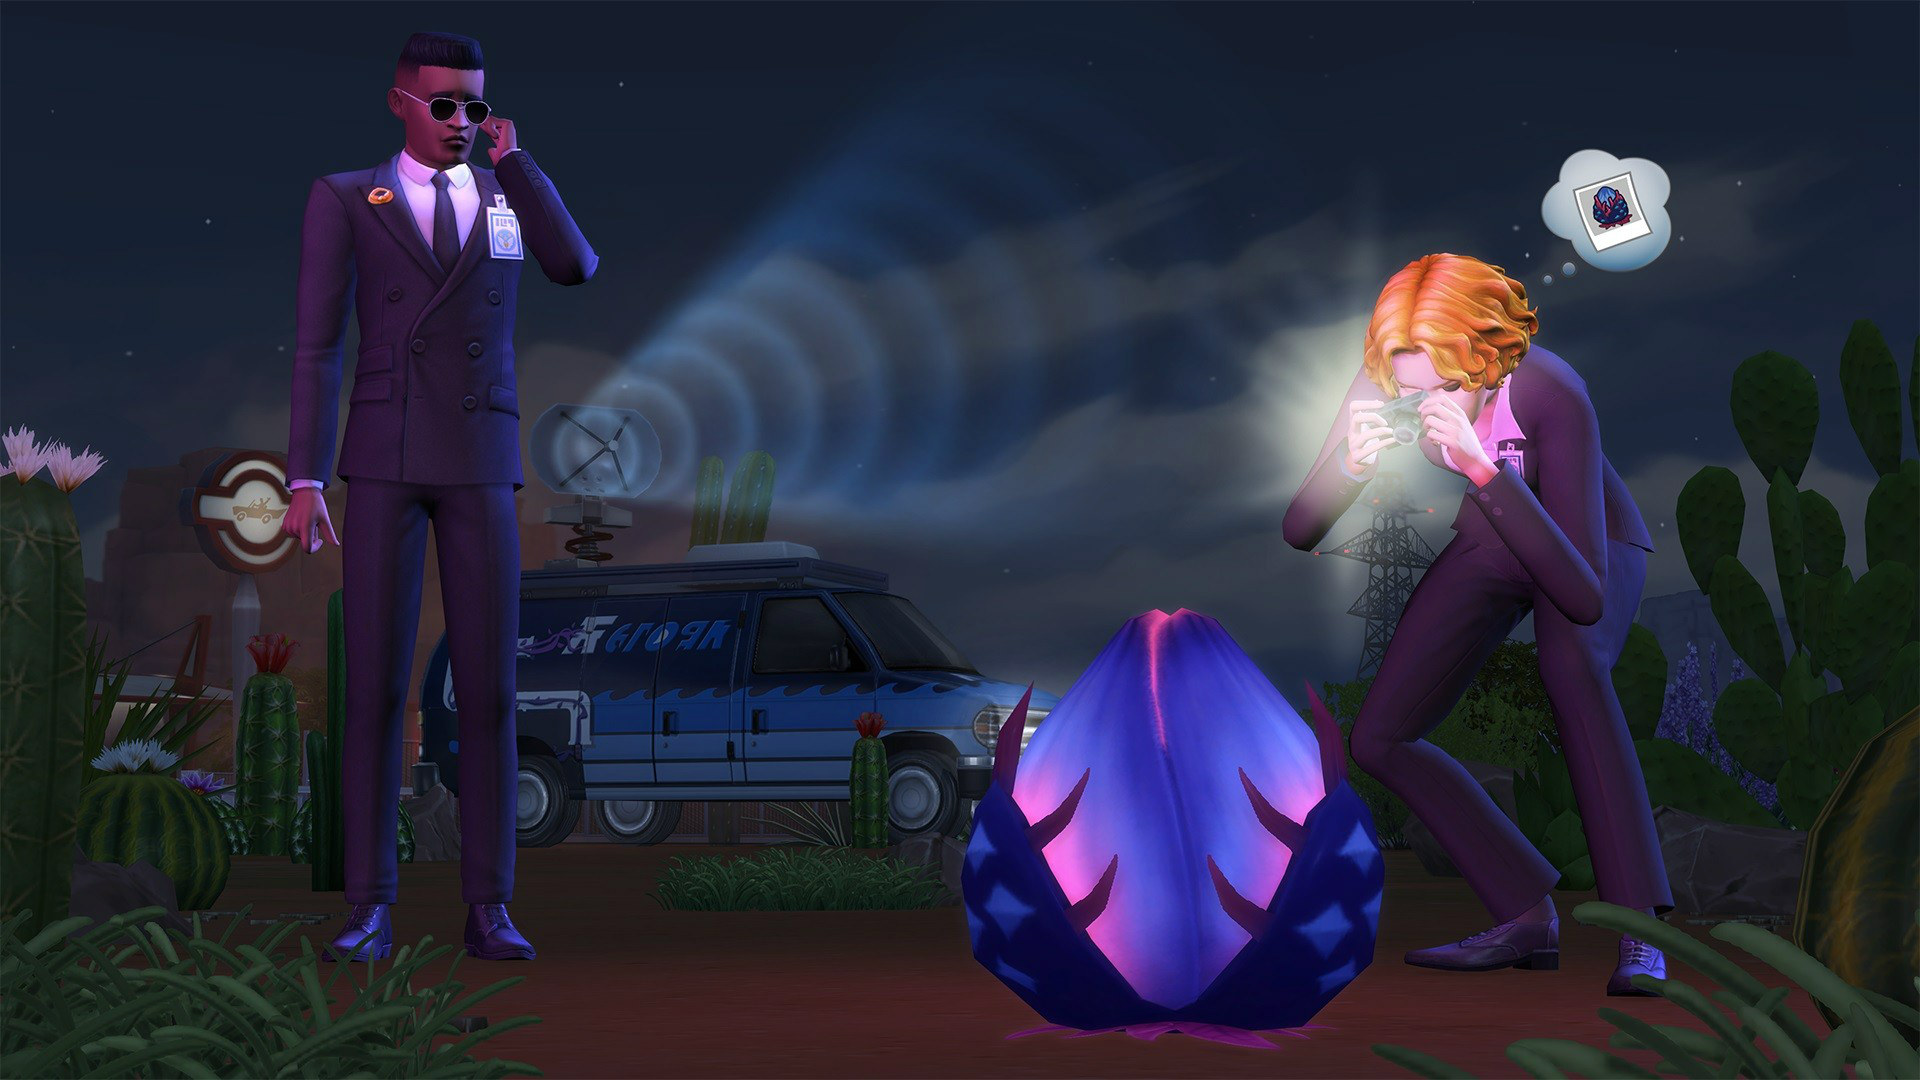 how to get rid of infected trait, sims 4 strangerville